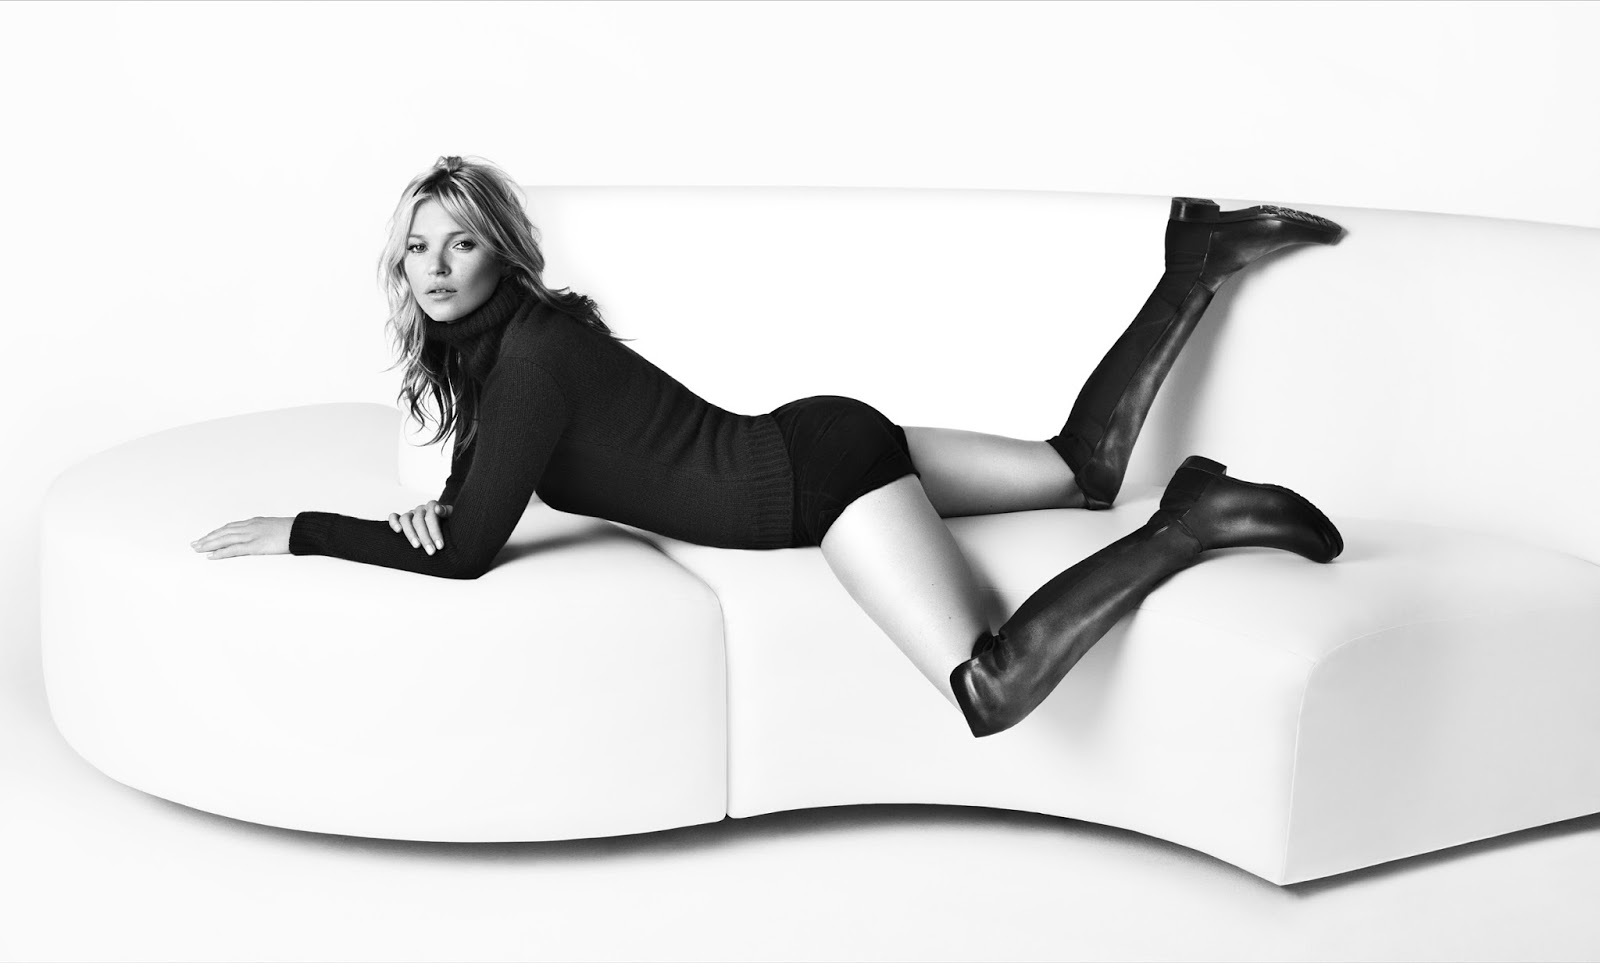 SHOPBOP - Stuart Weitzman FASTEST FREE SHIPPING WORLDWIDE on Stuart Weitzman & FREE EASY RETURNS.